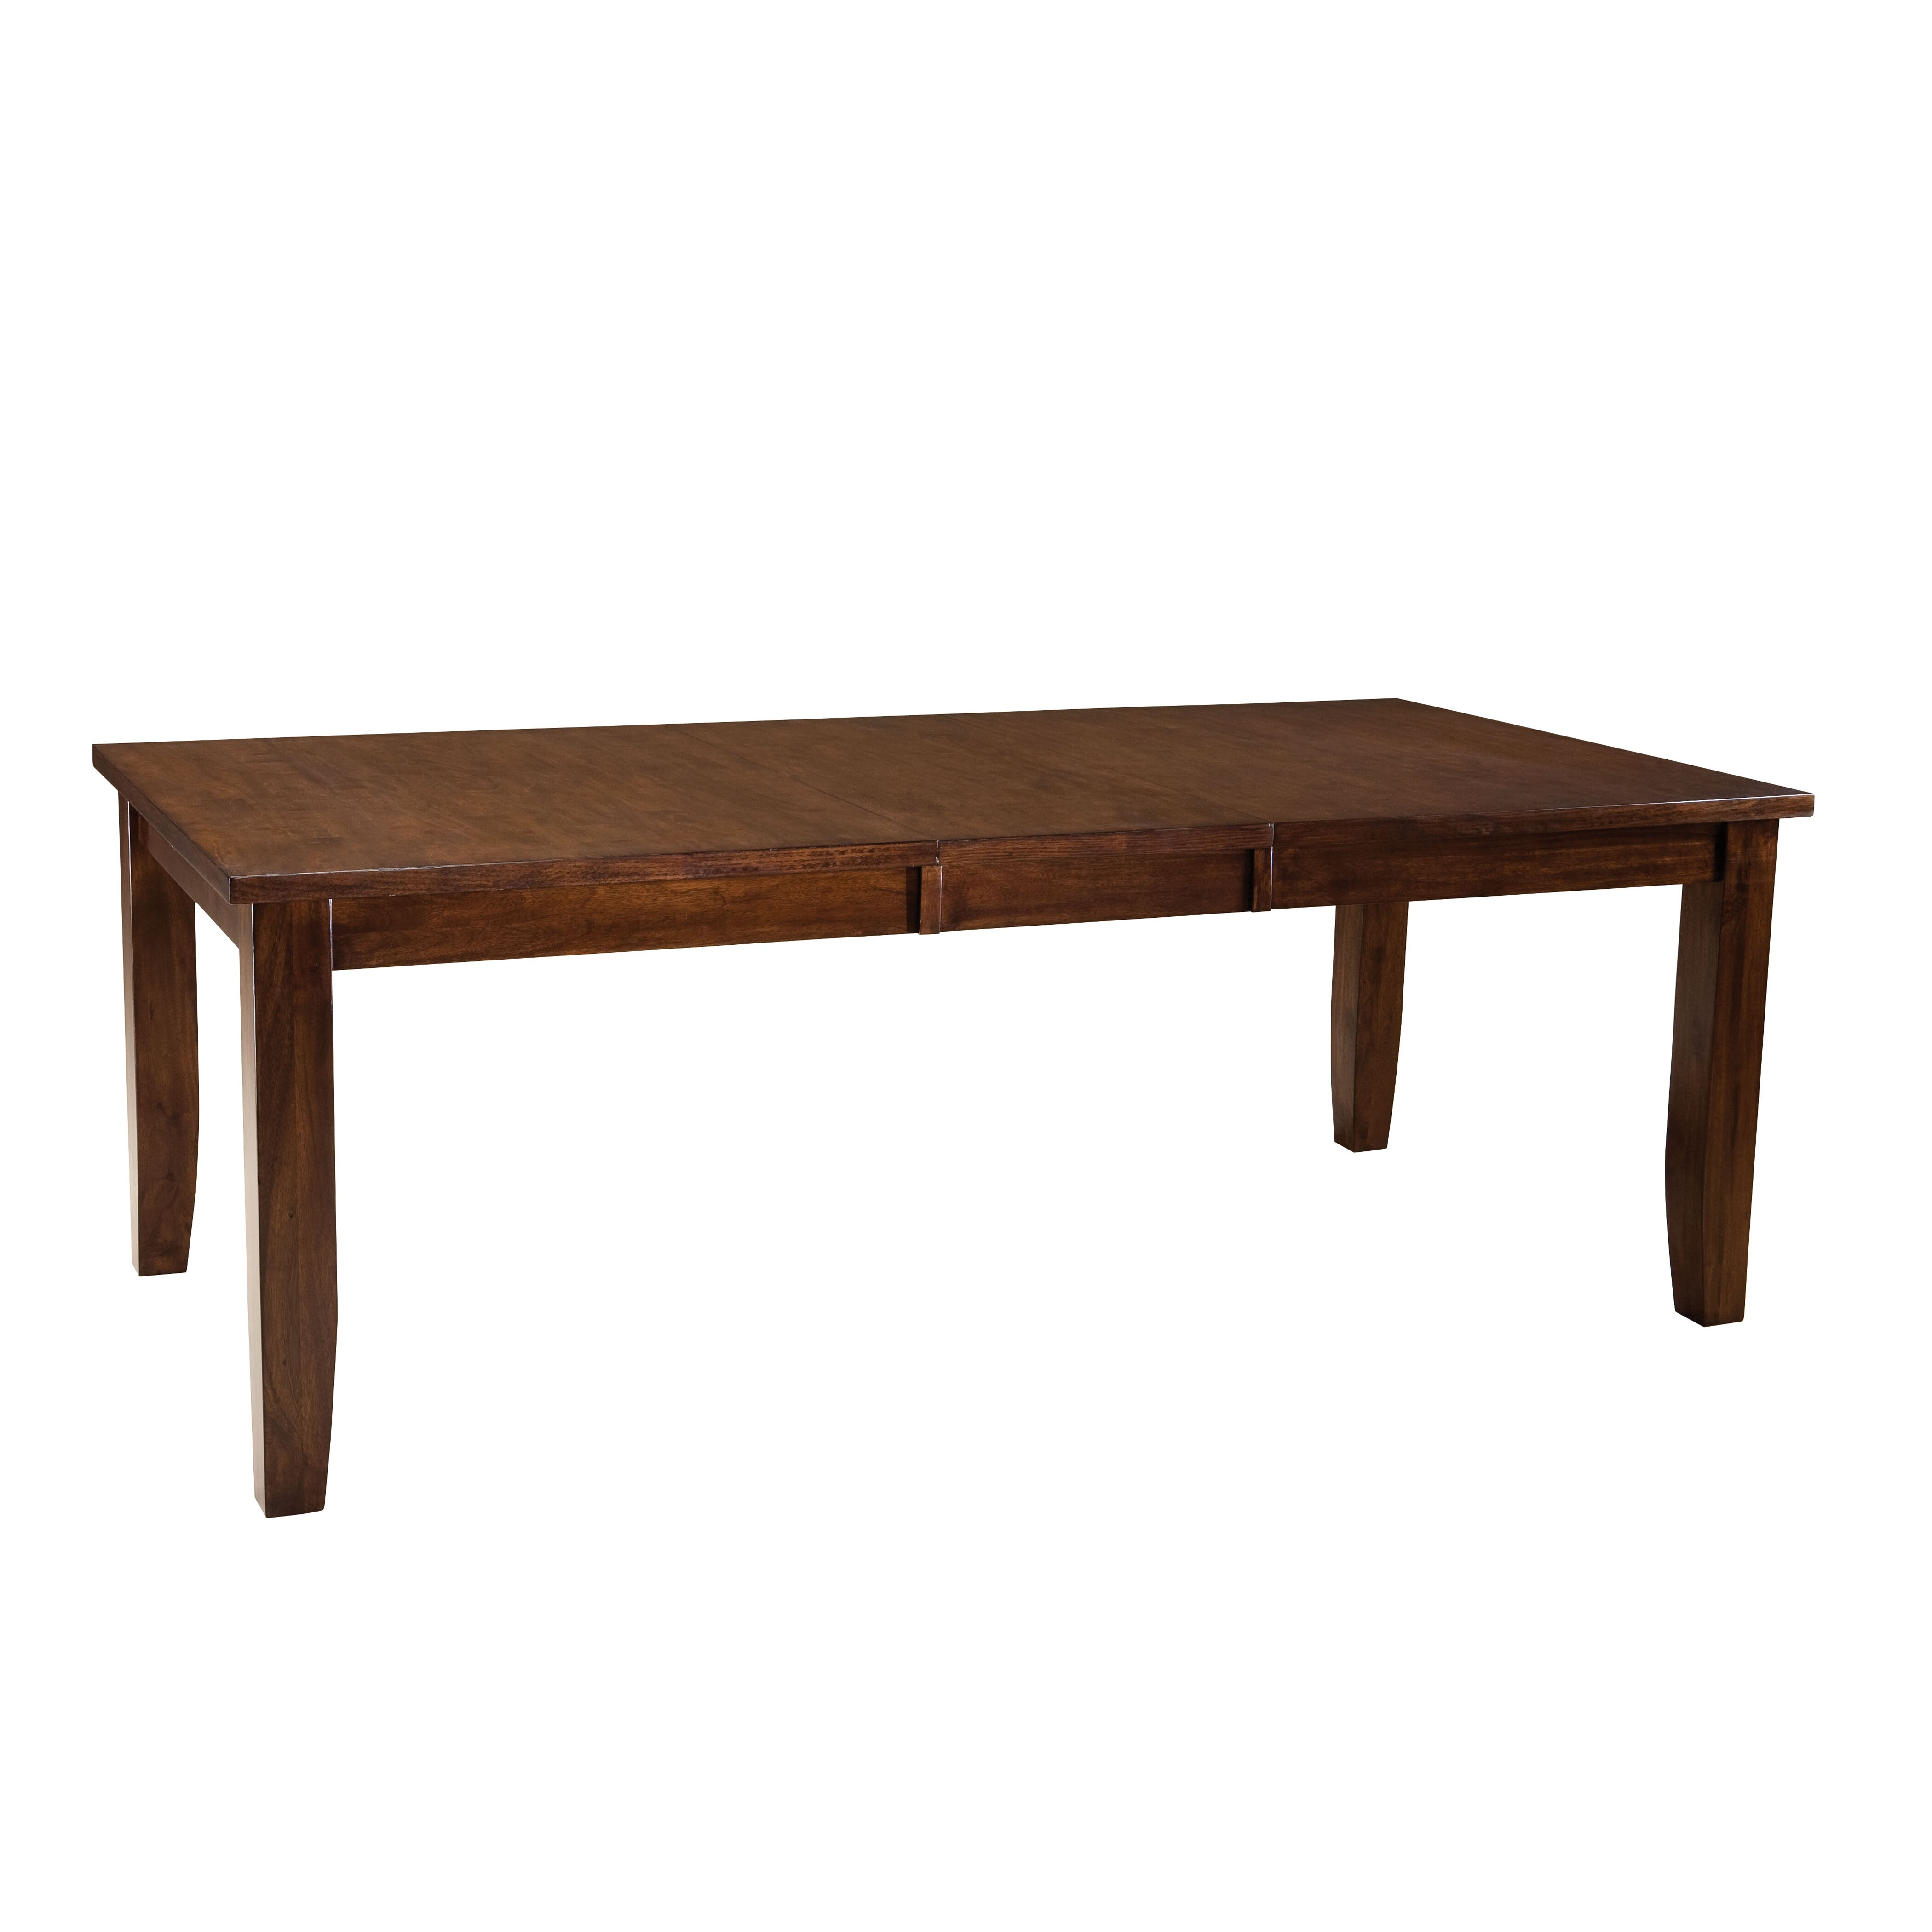 Standard furniture abaco dining table reviews wayfair for Wayfair furniture dining tables